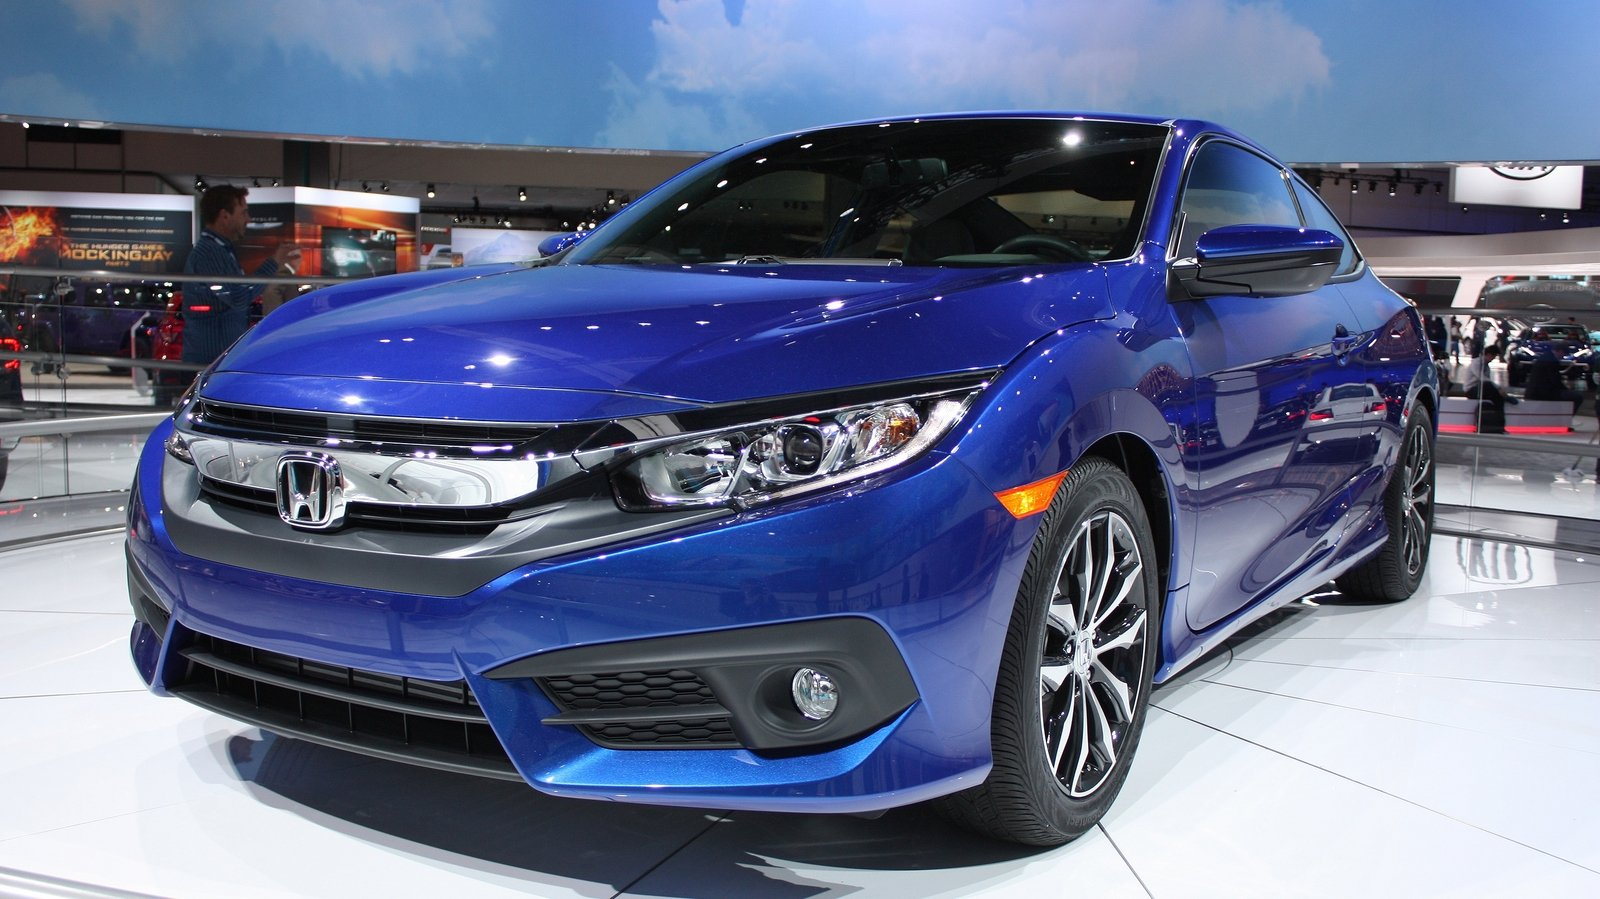 2016 honda civic coupe picture 656969 car review top speed. Black Bedroom Furniture Sets. Home Design Ideas